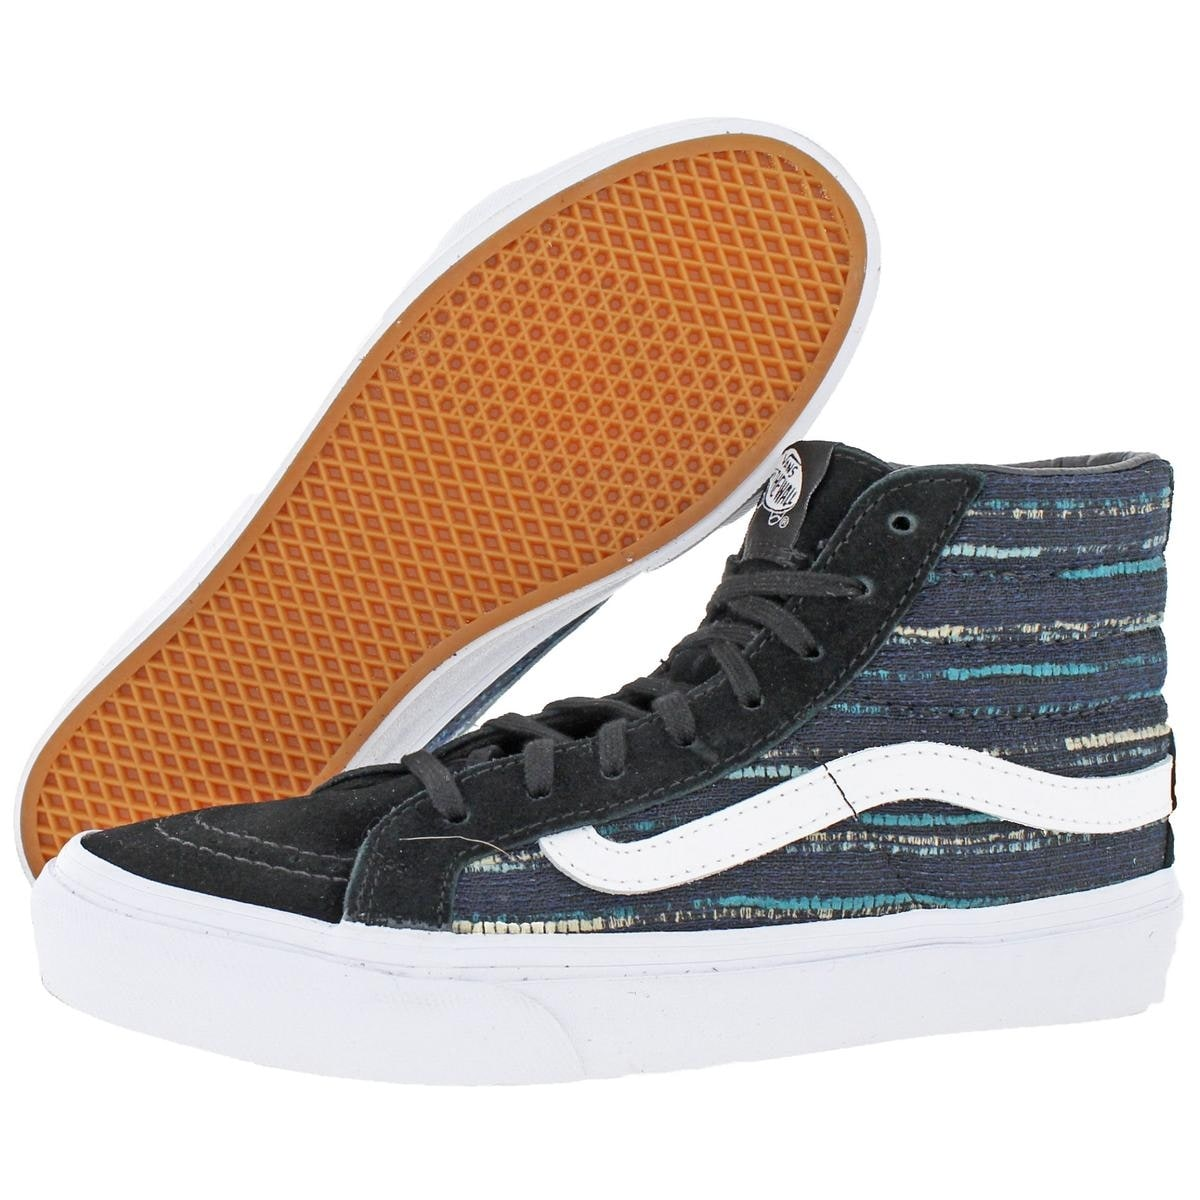 a6aac37a15 Shop Vans Womens SK8-Hi Slim Skate Shoes Italian Weave Fashion - Free  Shipping On Orders Over  45 - Overstock - 22732739